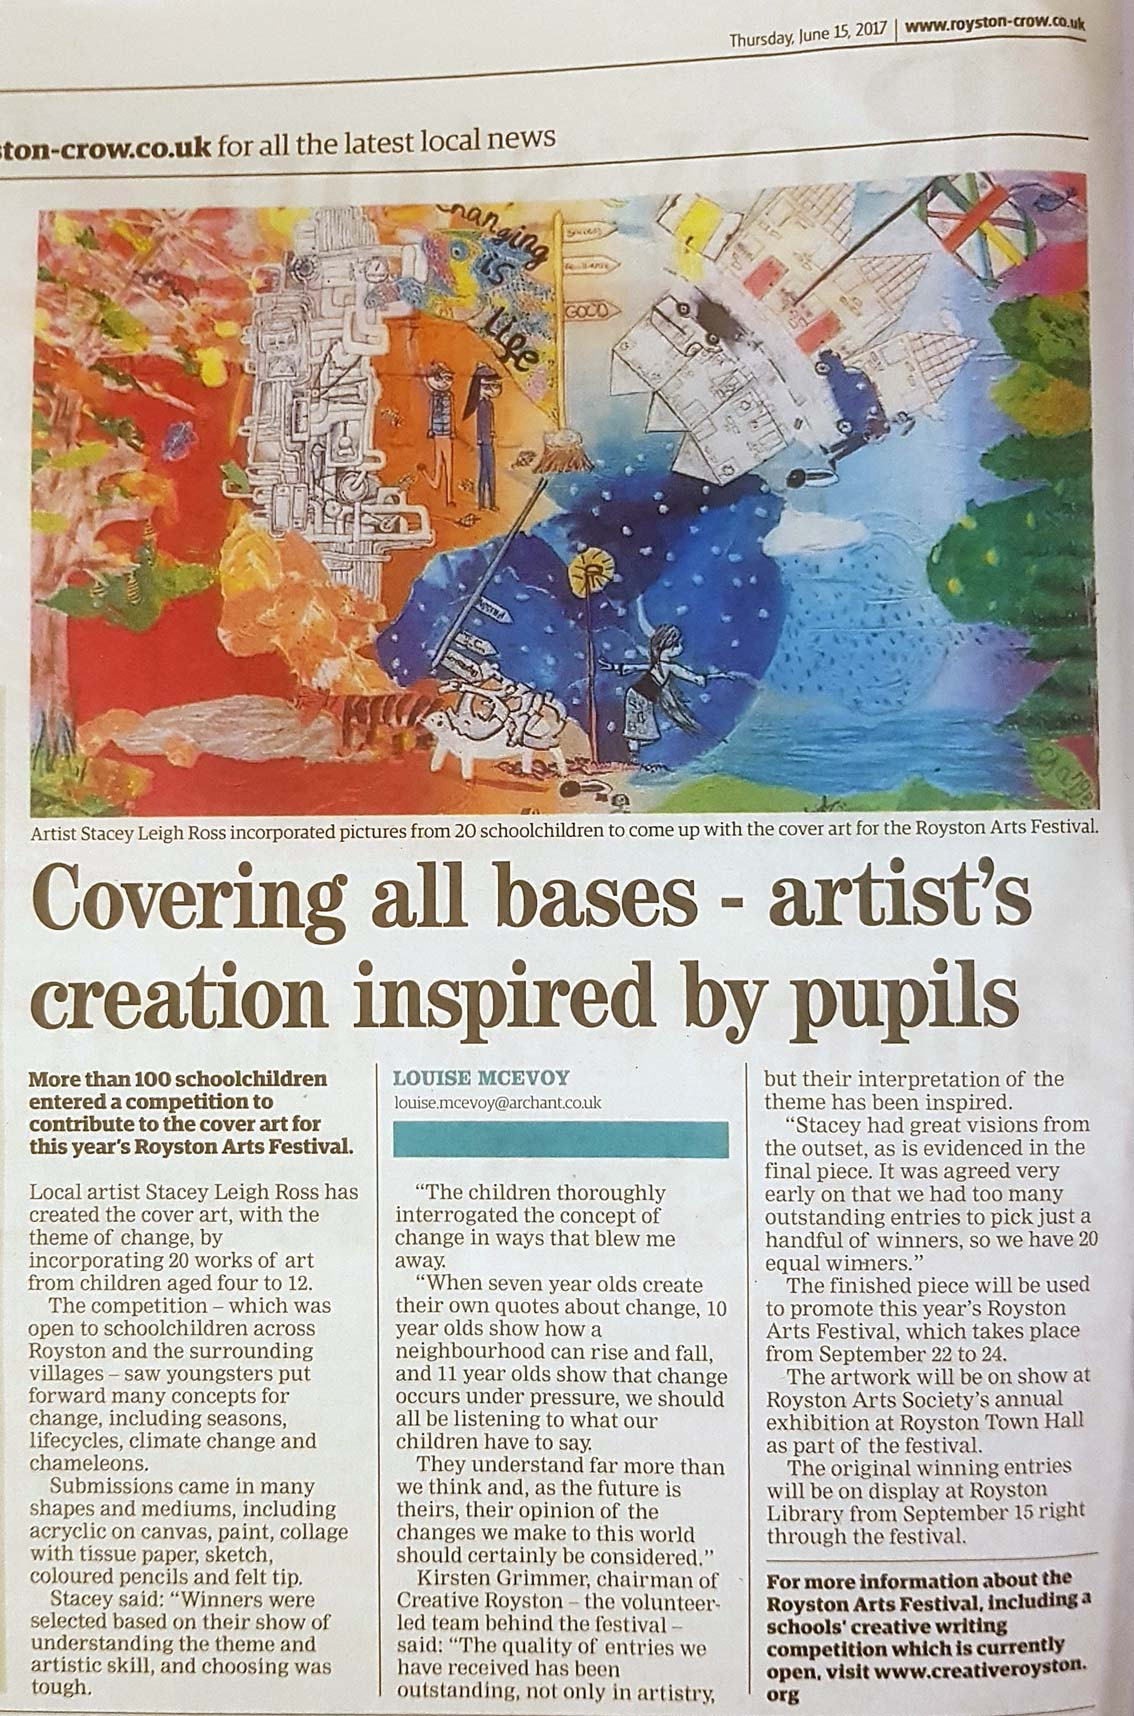 Royston Crow article about how Stacey Leigh Ross incorporates the artwork of 20 children into the Royston Arts Festival Programme Cover